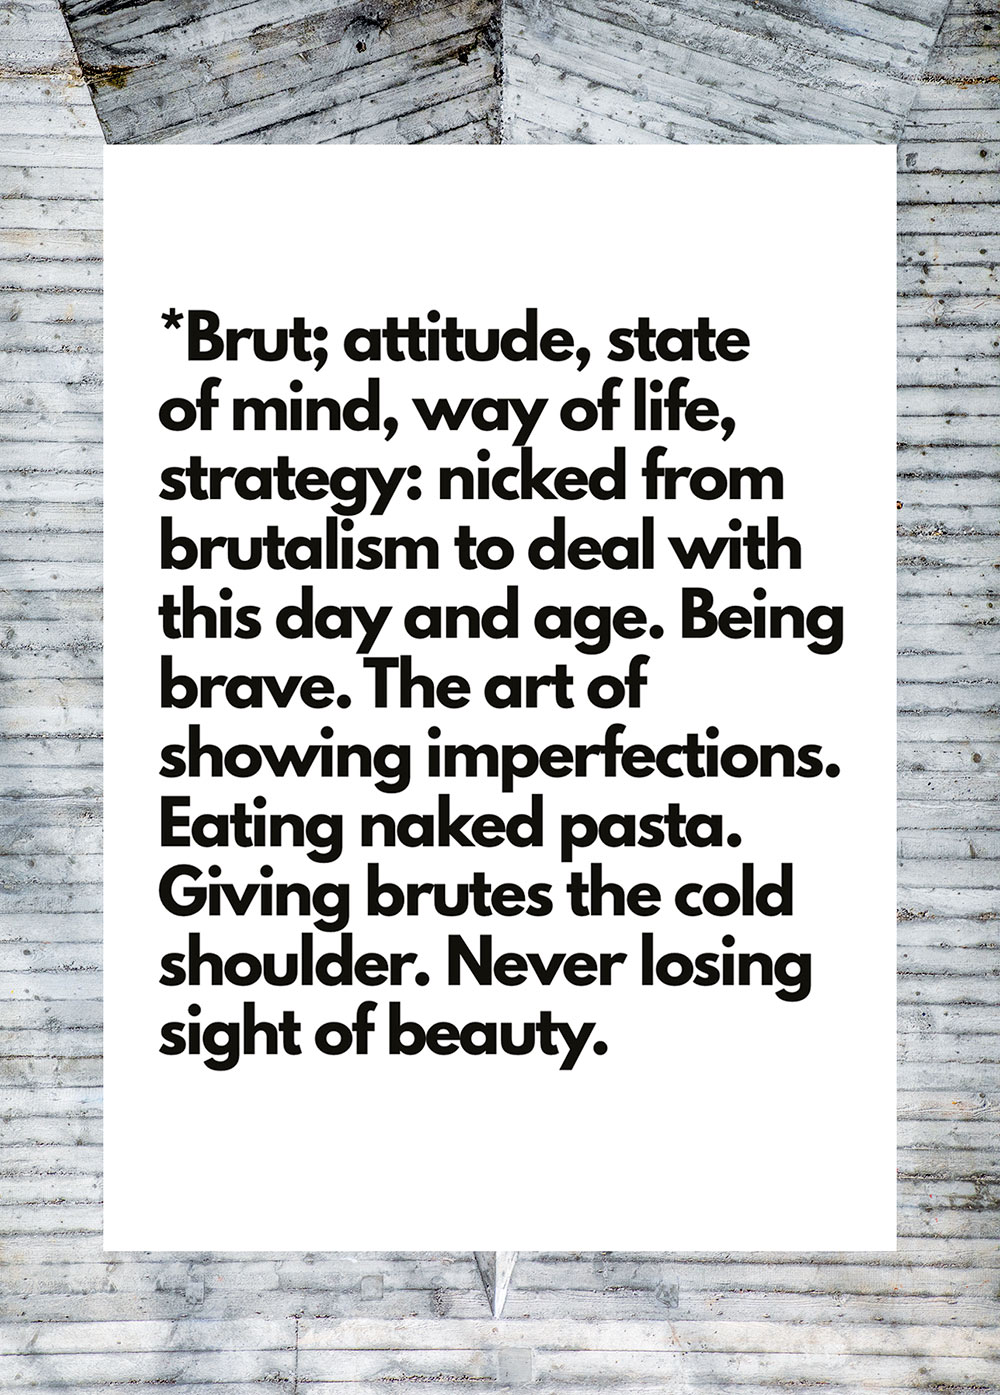 *Brut; attitude, state of mind, way of life, strategy: nicked from brutalism to deal with this day and age. Being brave. The art of showing imperfections. Eating naked pasta. Giving brutes the cold shoulder. Never losing sight of beauty. I Karin Hunter Bürki I HEARTBRUT